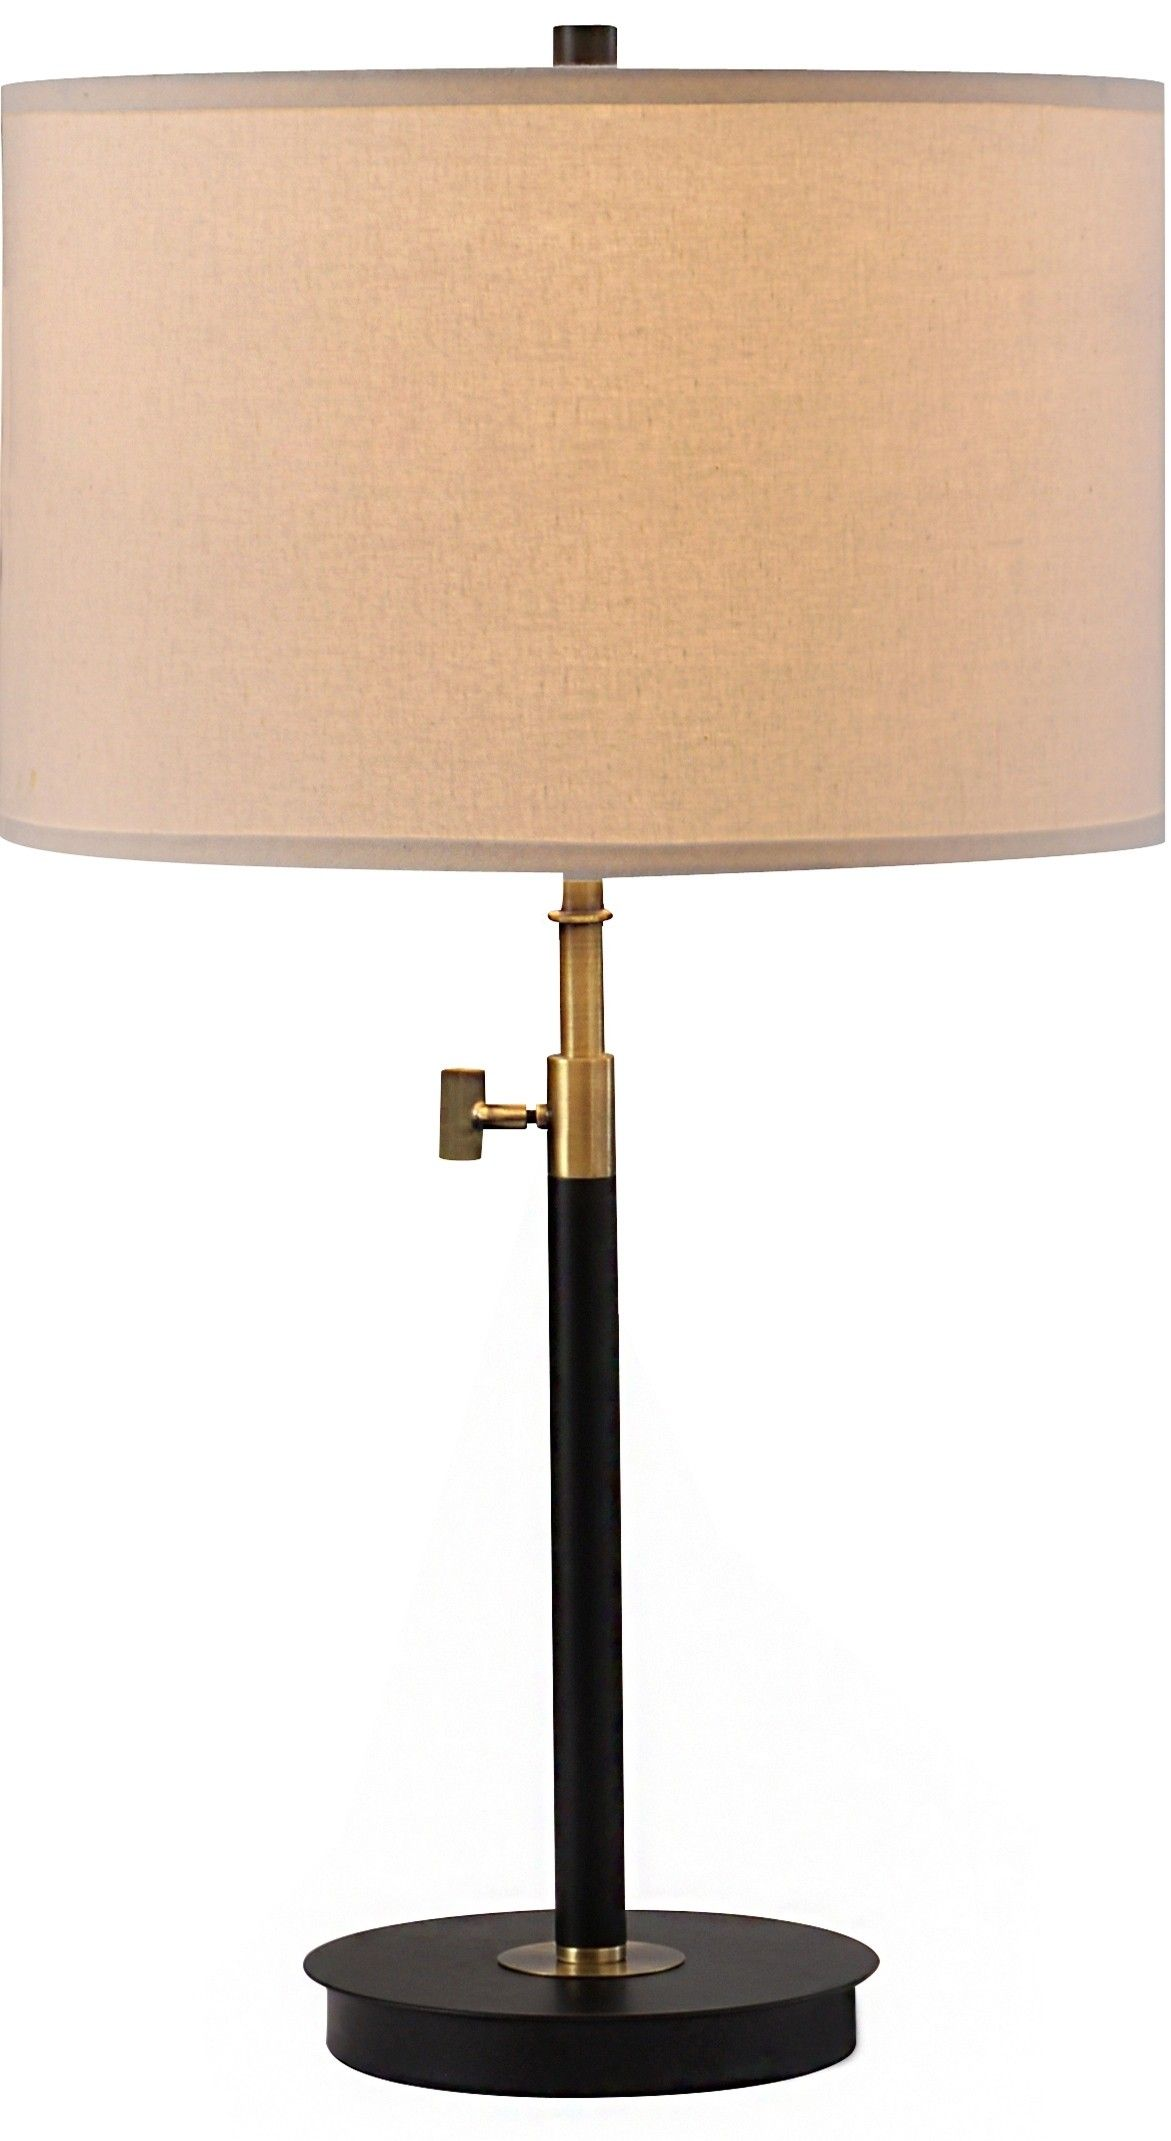 Turline Table Lamp Simple Lamp Table Lamp Modern Lamp